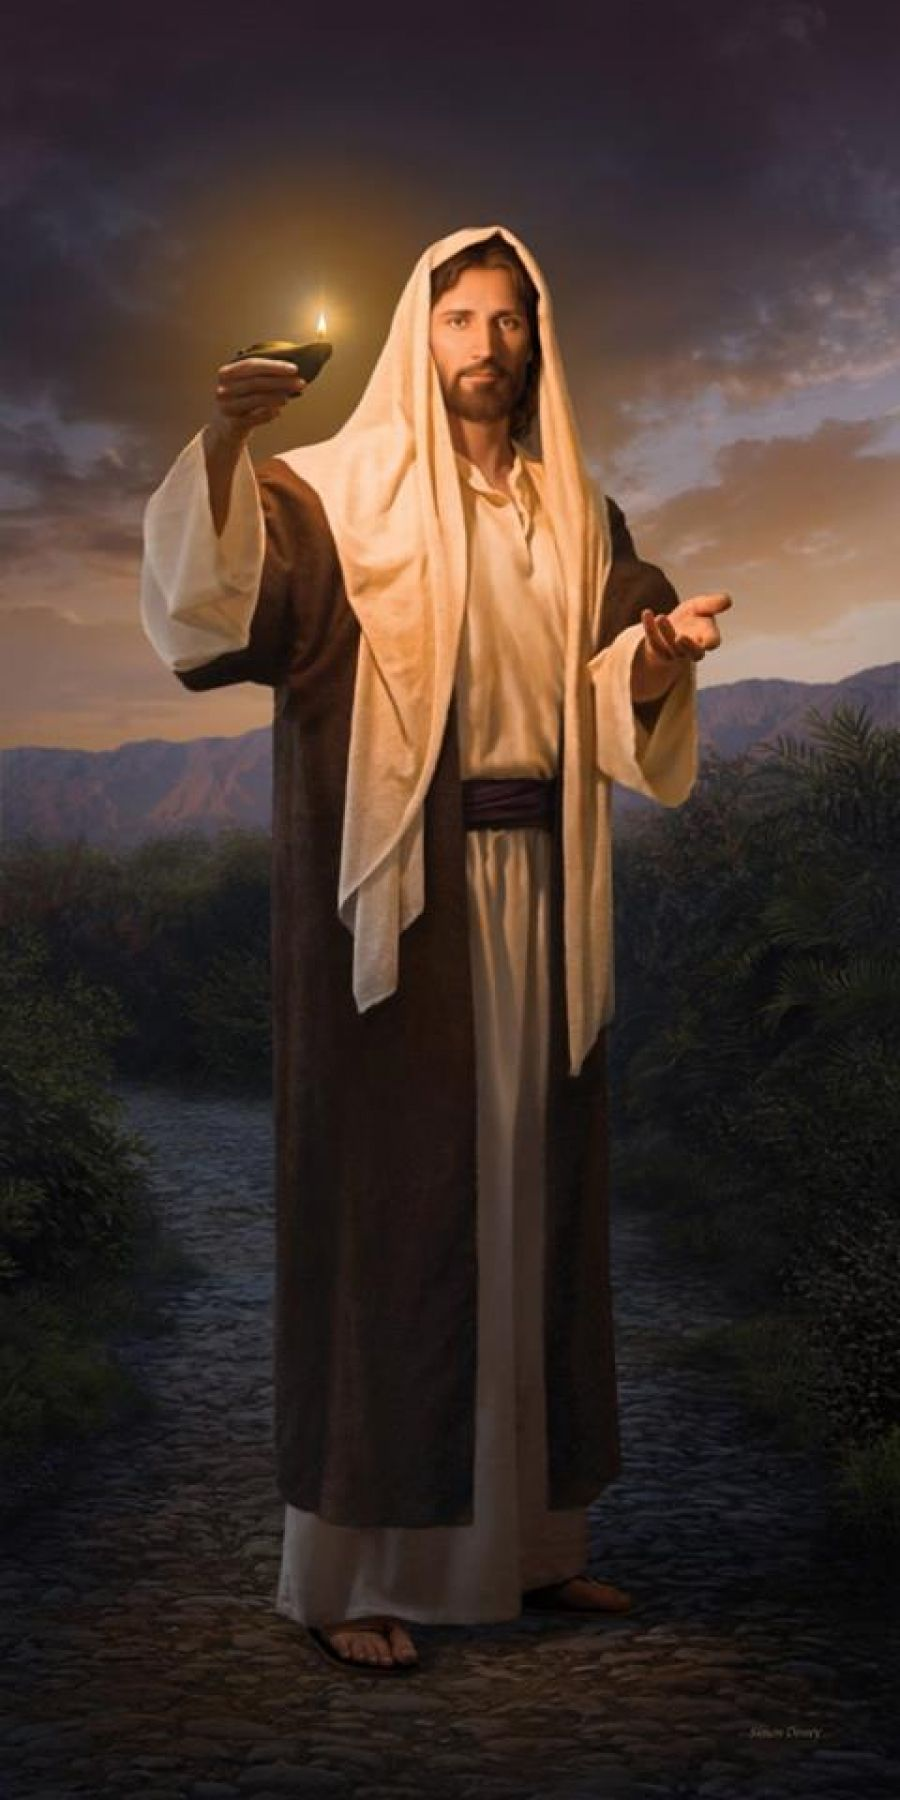 lds art savior greg olsen - photo #4